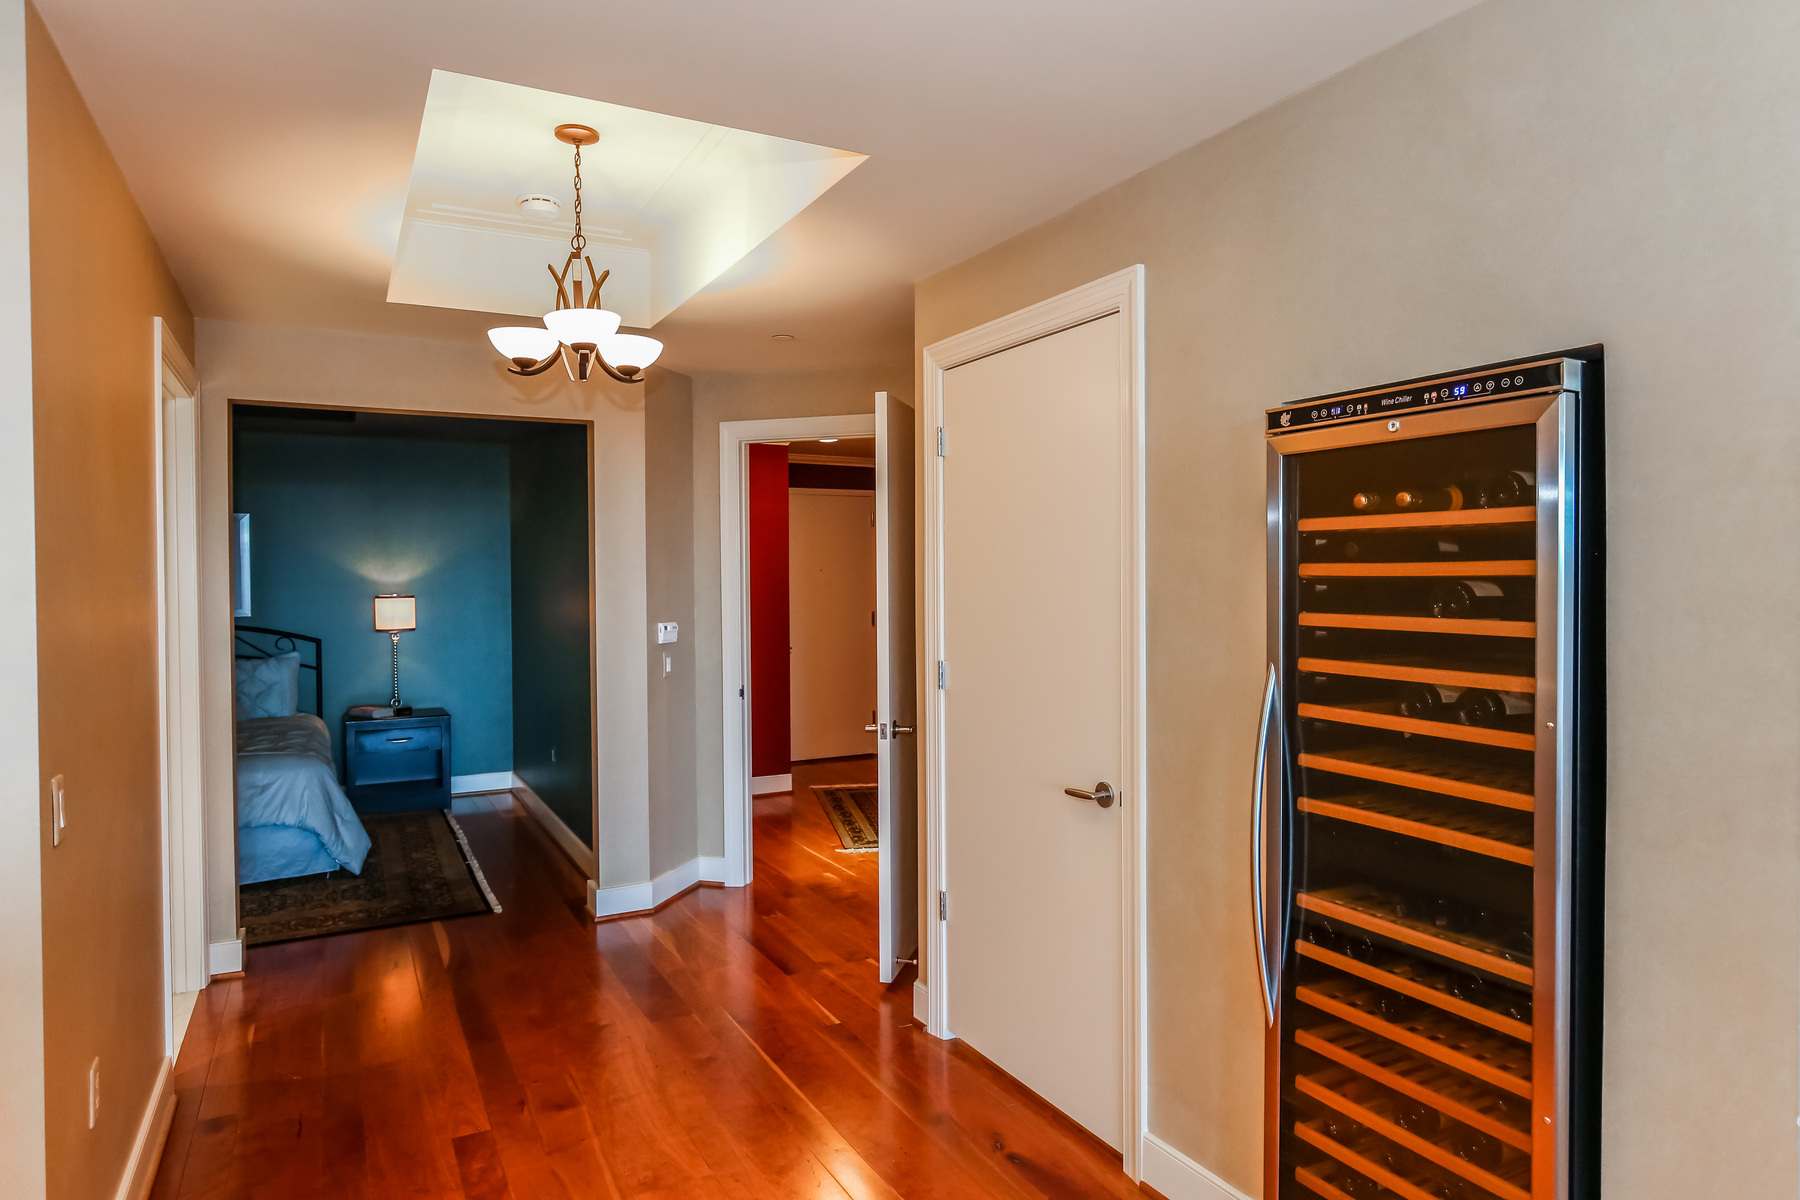 Additional photo for property listing at 1881 Nash Street N 1504, Arlington  Arlington, Virginia 22209 Vereinigte Staaten